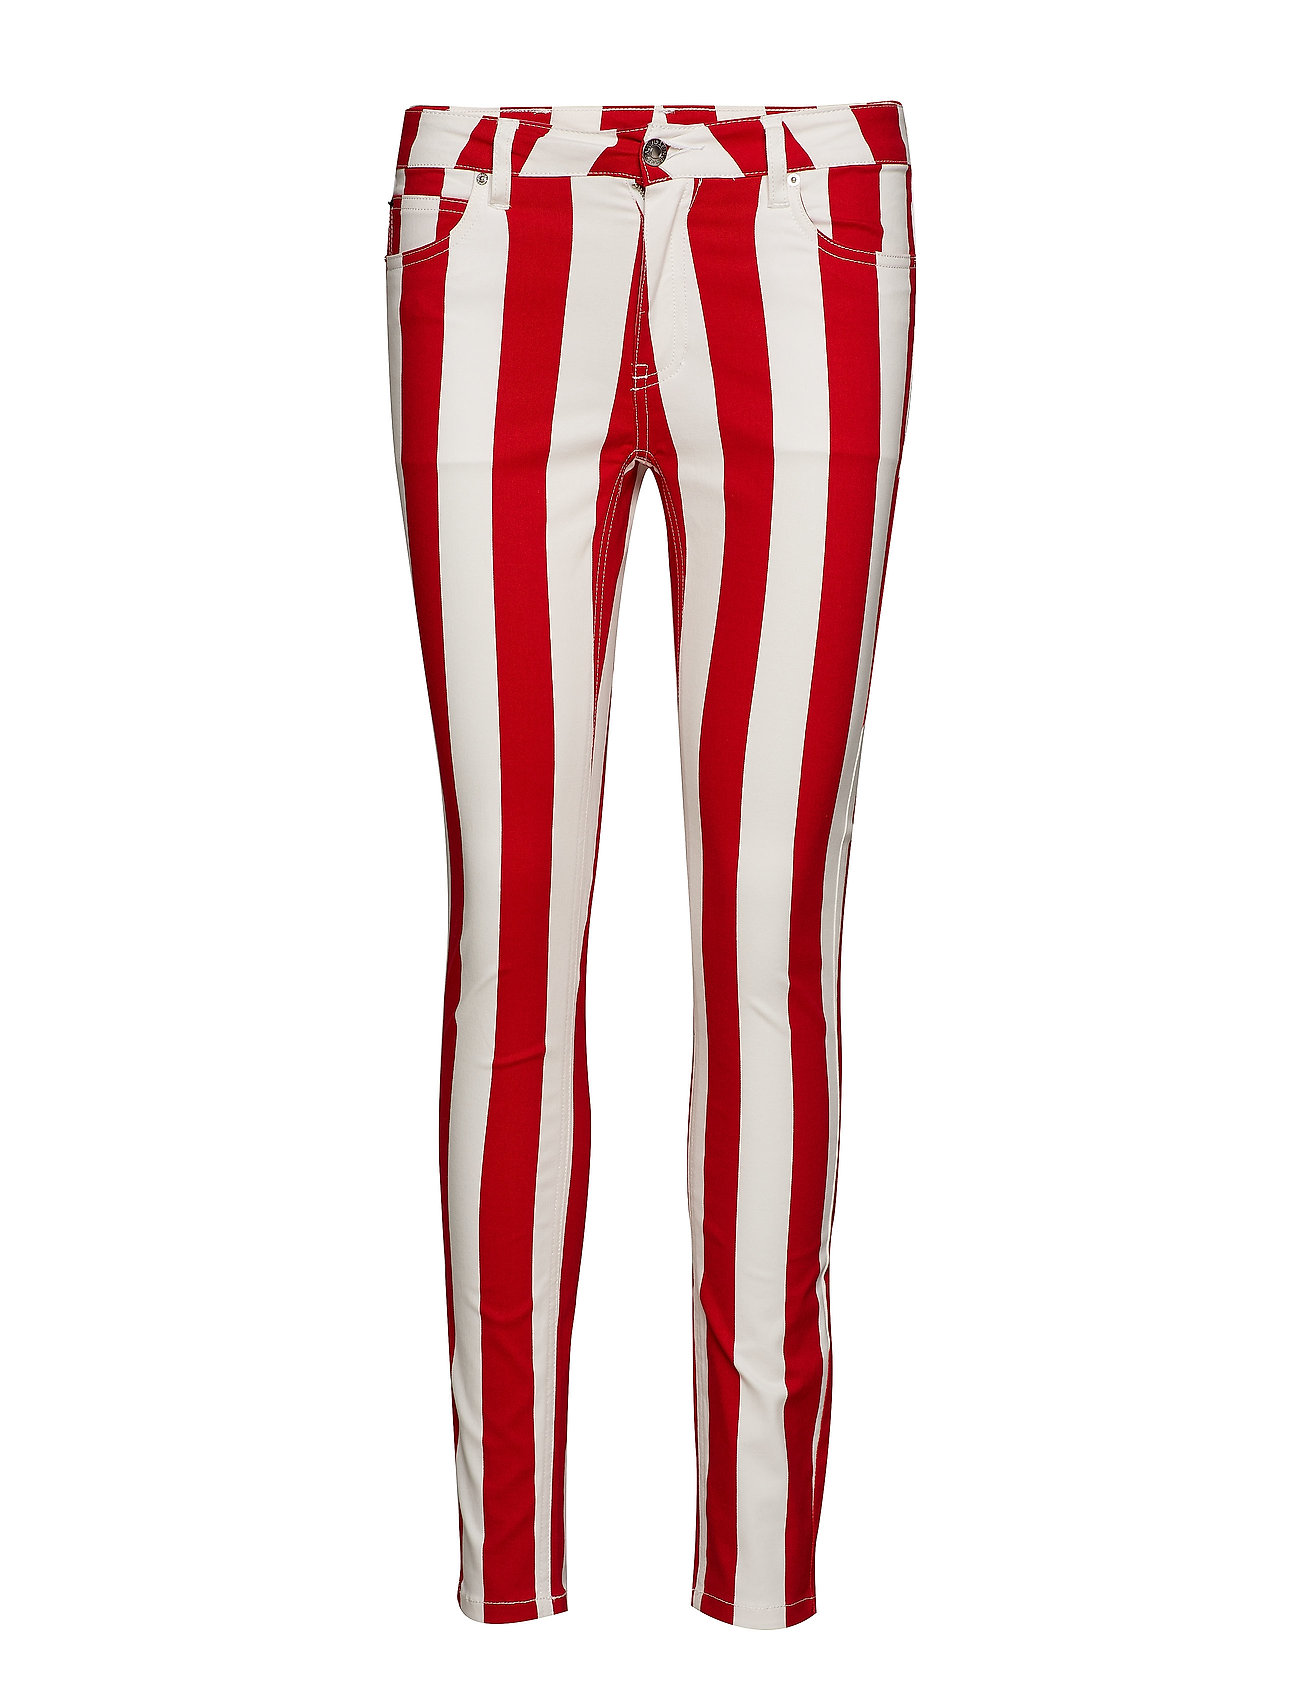 Calvin Klein Jeans MID RISE SKINNY STRIPE PANT - RACING RED/BRIGHT WHITE